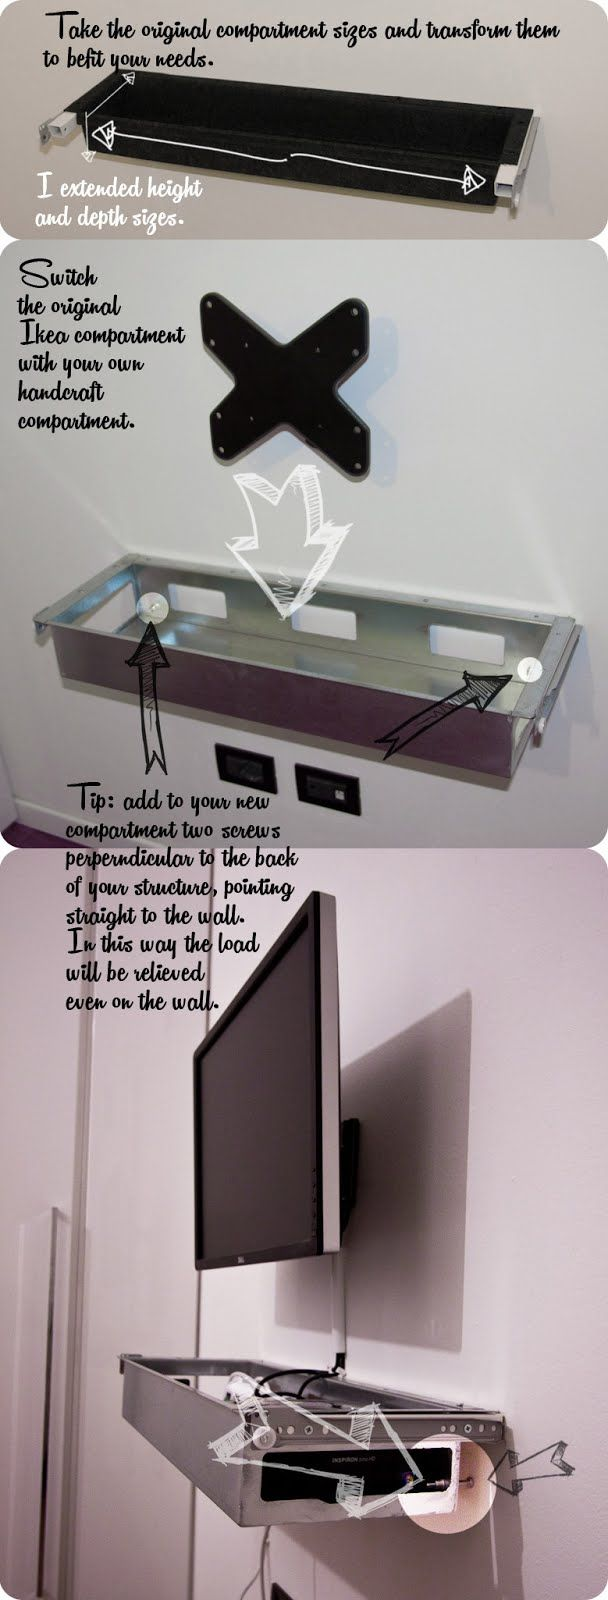 best ikea hacker images on pinterest ikea hackers camcorder and